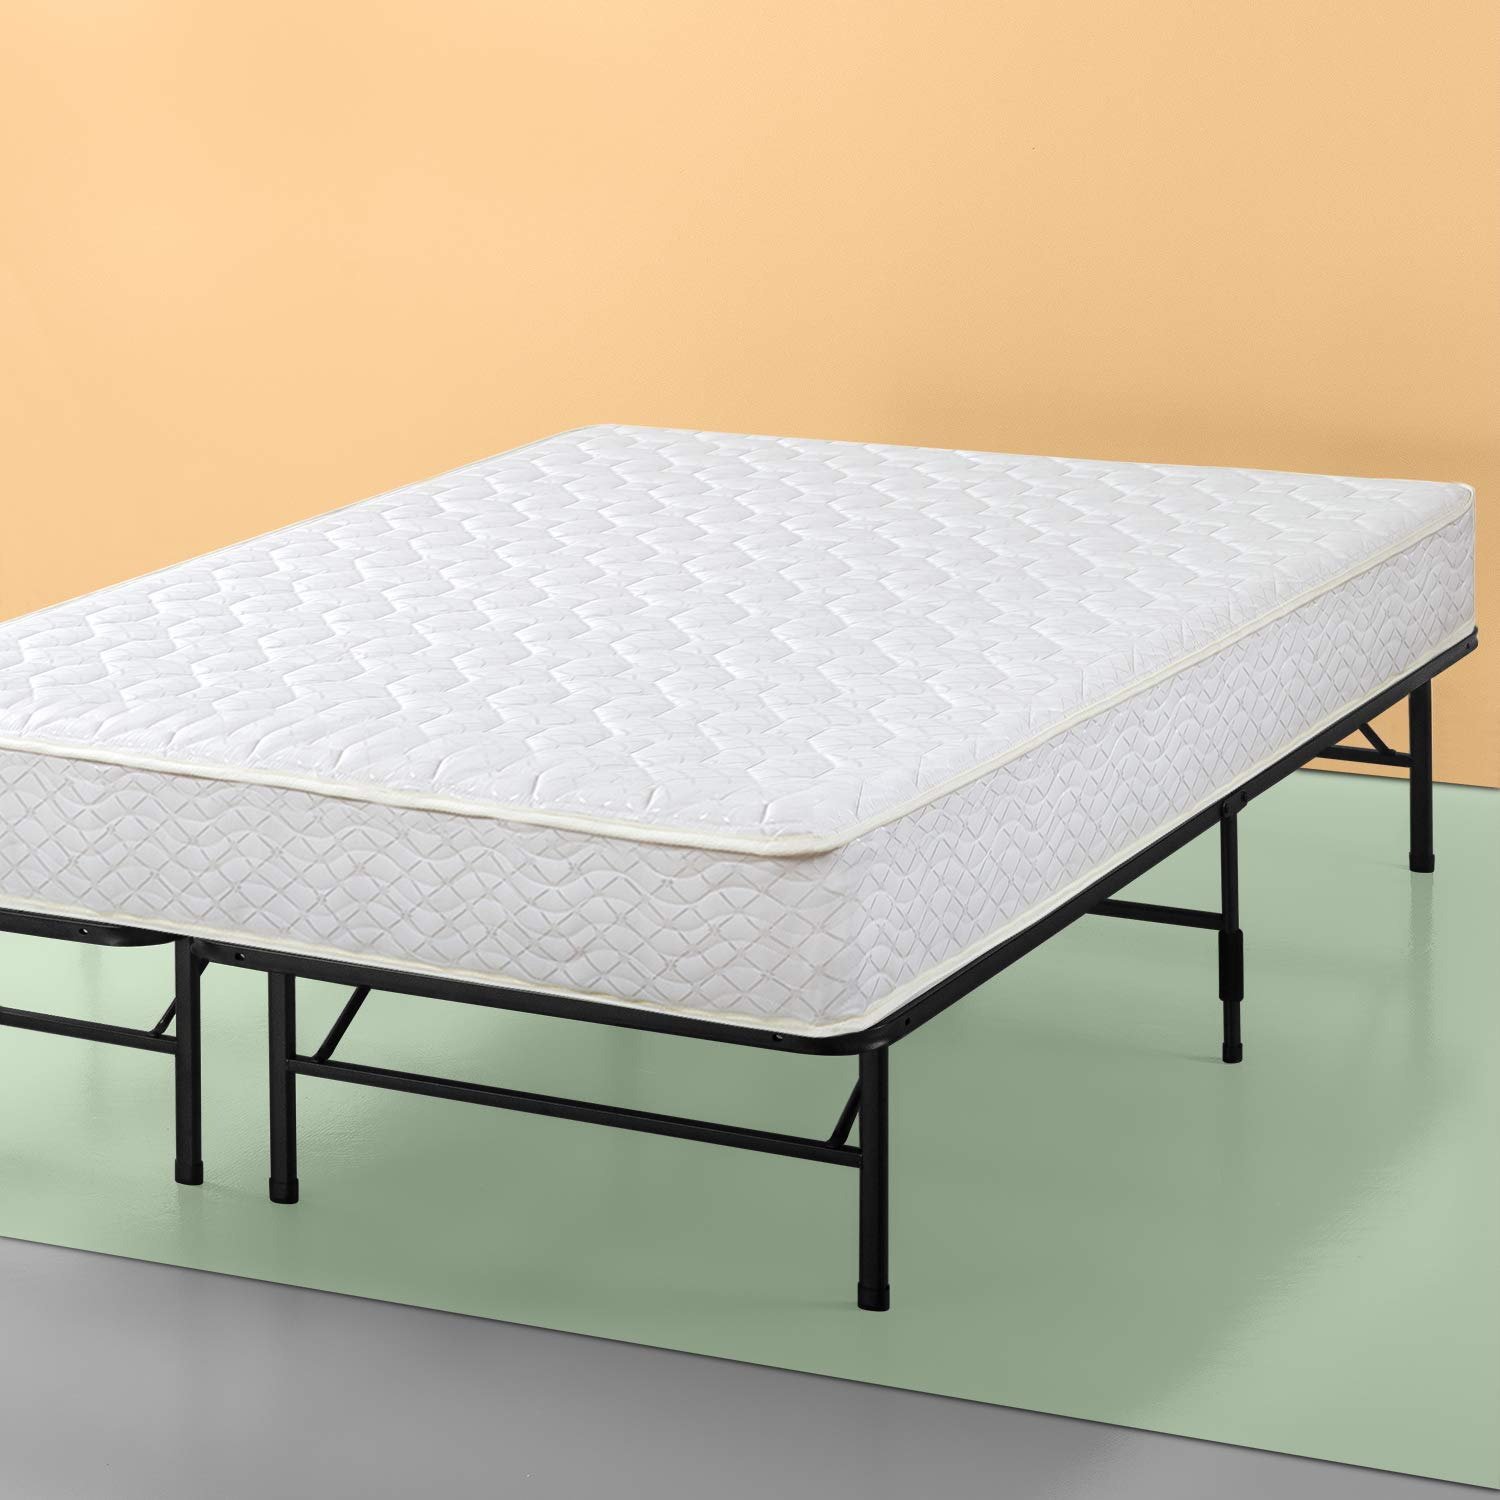 Zinus Set, Twin 8 Inch Spring Mattress and Shawn SmartBase Platform Bed Frame / Mattress Foundation by Zinus